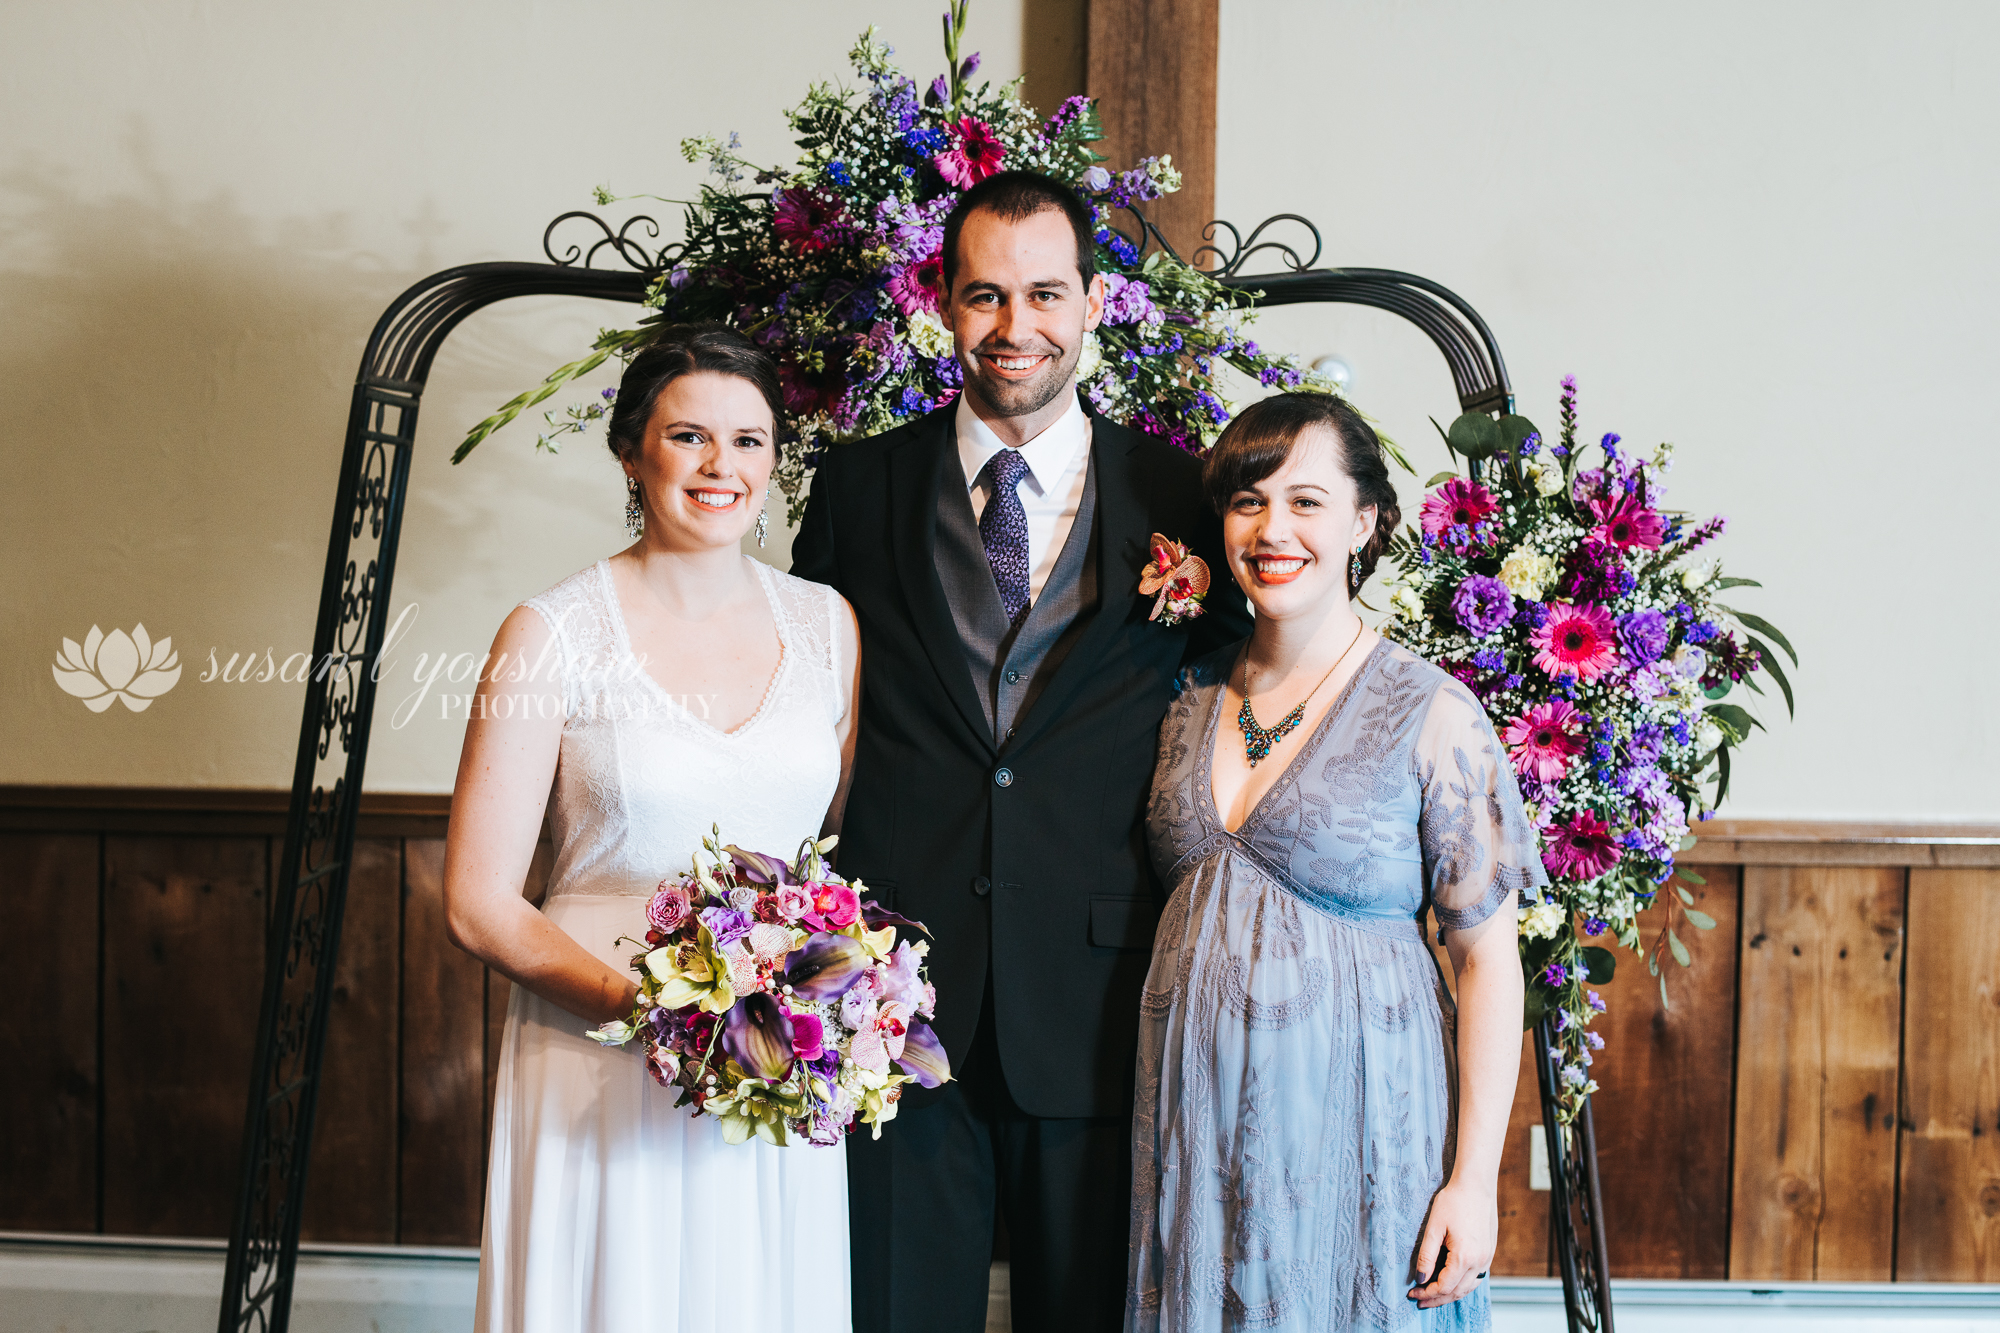 Adena and  Erik Wedding 05-17-2019 SLY Photography-53.jpg